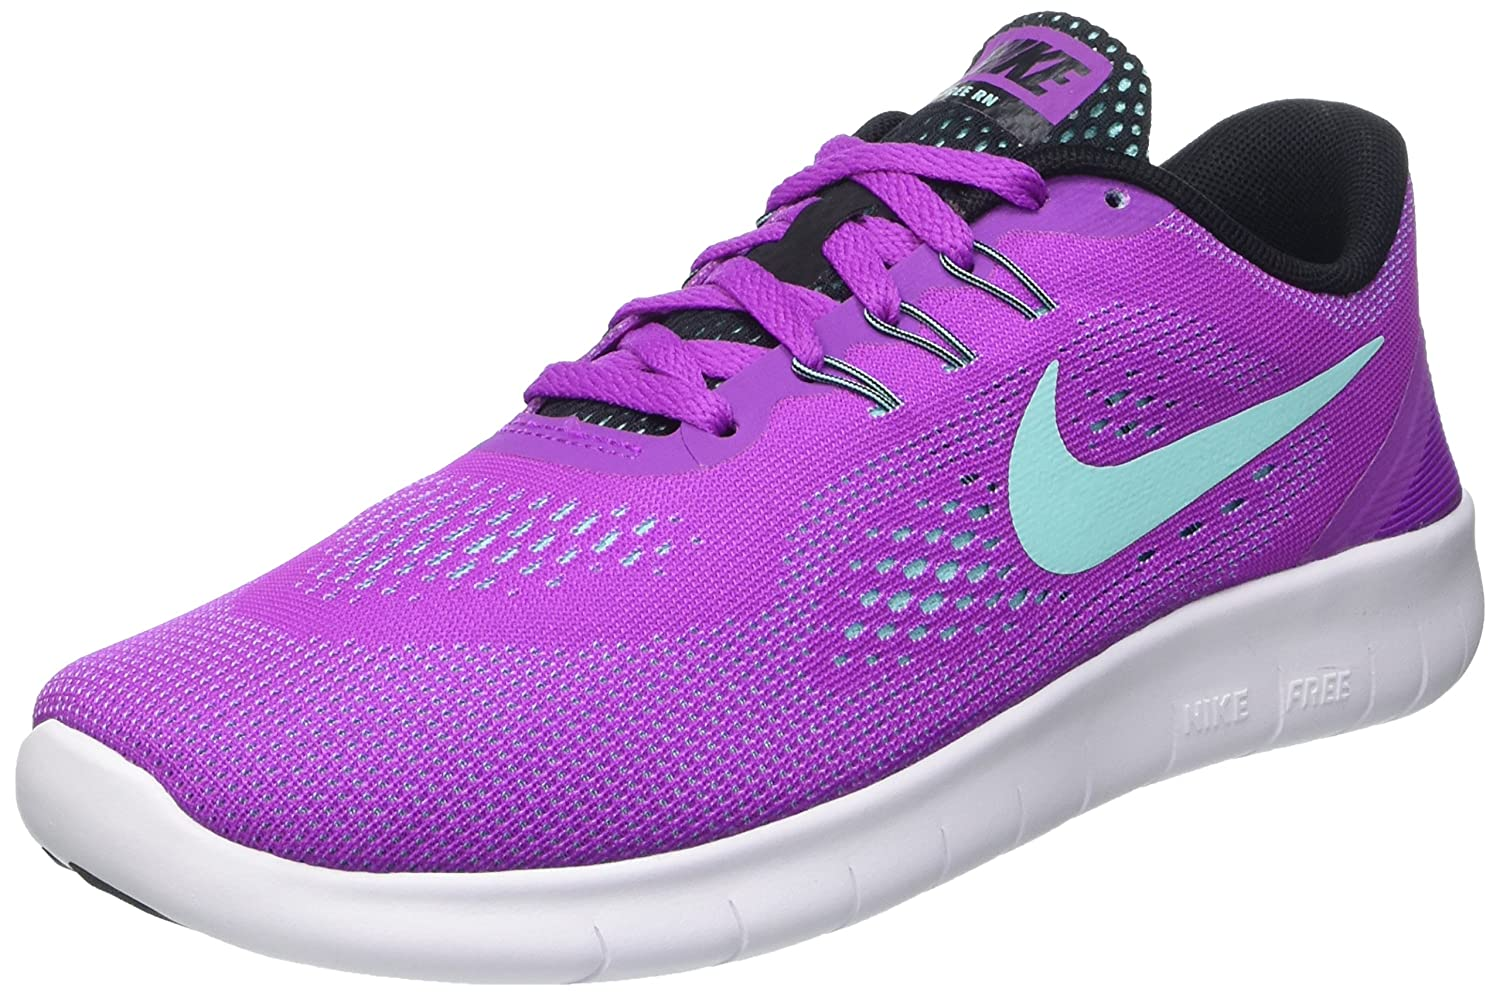 NIKE ' Free Rn (Big) B014TFXRQU Youth Size 6.5|Hyper Violet/Black/White/Hyper Turquoise